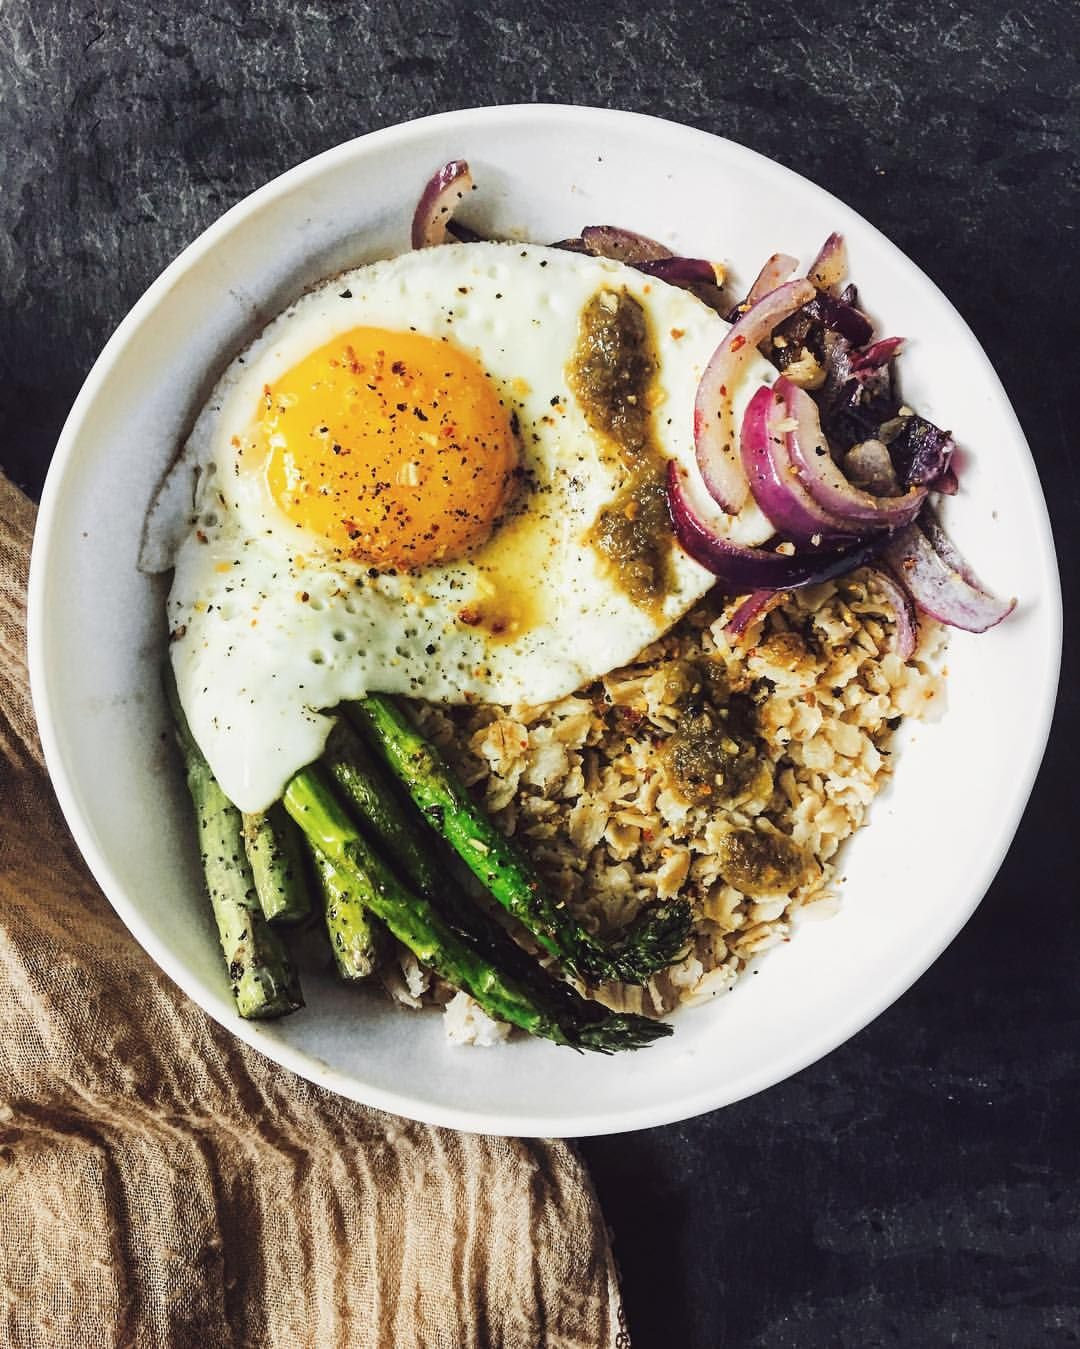 Savory afternoon oats with fried egg - Dietetic Aesthetic | Capture the flavor  #delicious, #healthy, #eeeeeats, #food, #instafood, #nycfood, #buzzfeedfood, #buzzfeast, #newforkcity, #nyceats, #rd2be, #health, #nutrition, #dieteticaesthetic, #foodstagram, #feedfeed, #foodie, #f52grams, #spoonuniversity, #foodporn, #newforkcity, #huffposttaste, #feedfeed, #feastagram, #spoonfeed, #collegeeats, #nom, #nyc